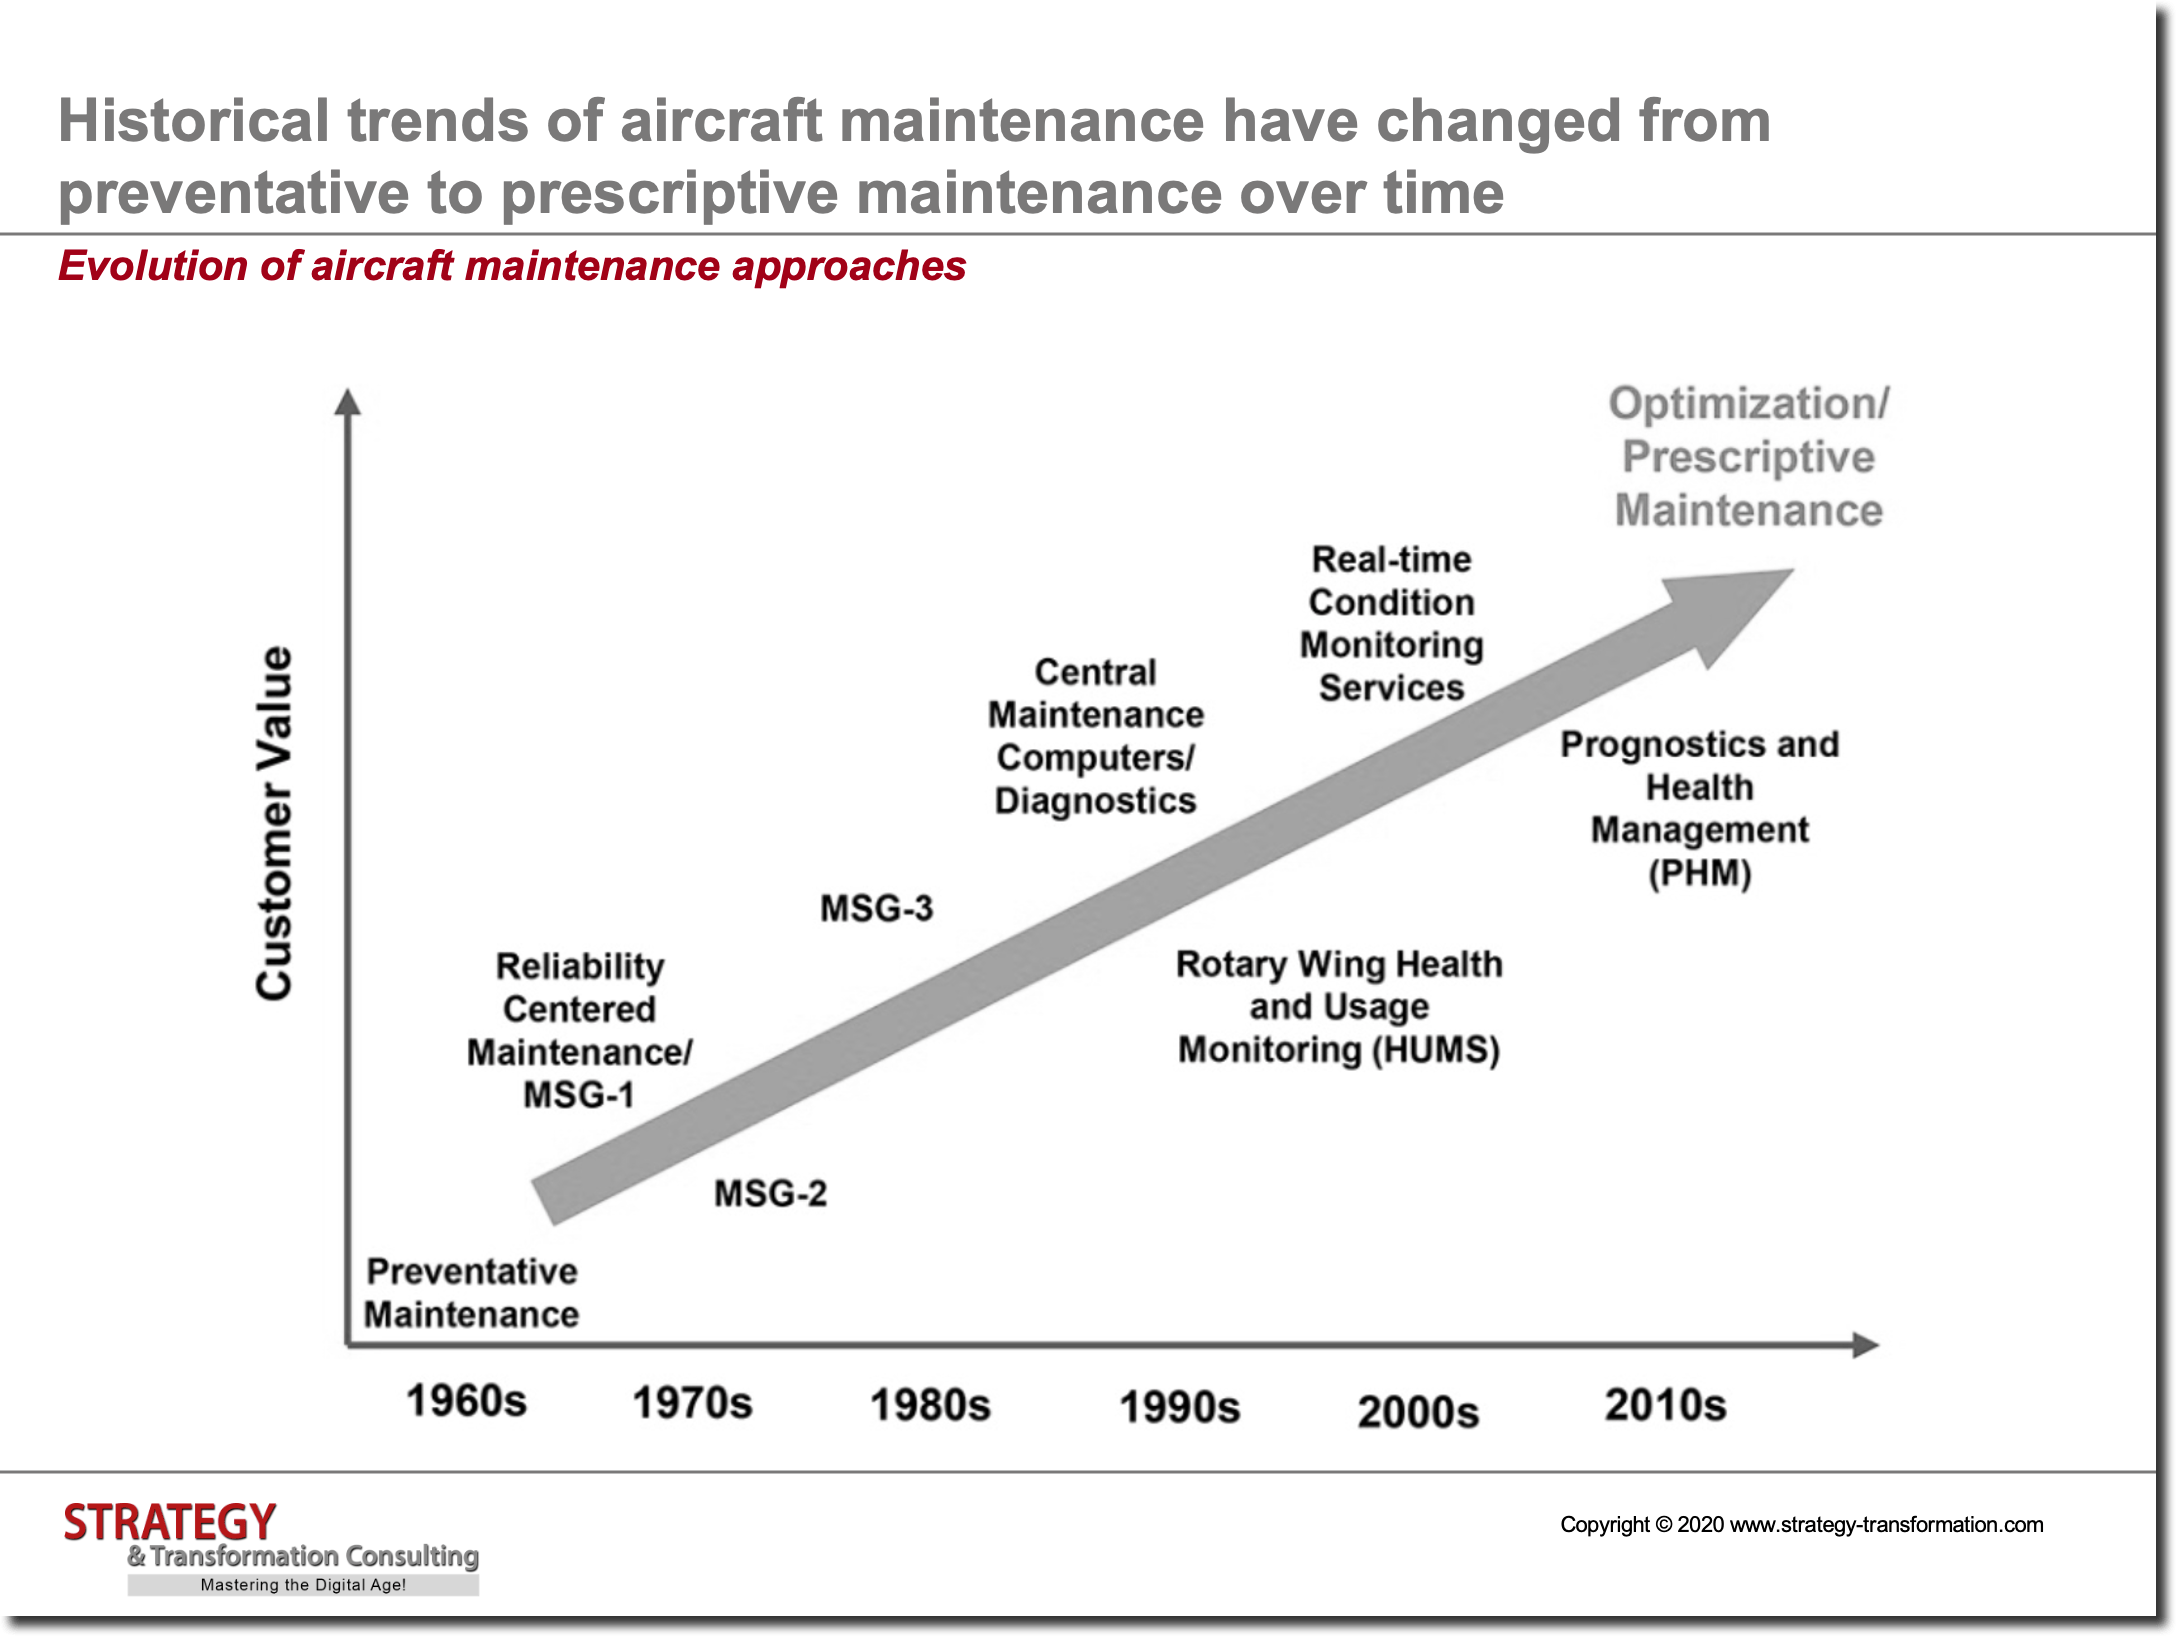 Evolution of aircraft maintenance approaches